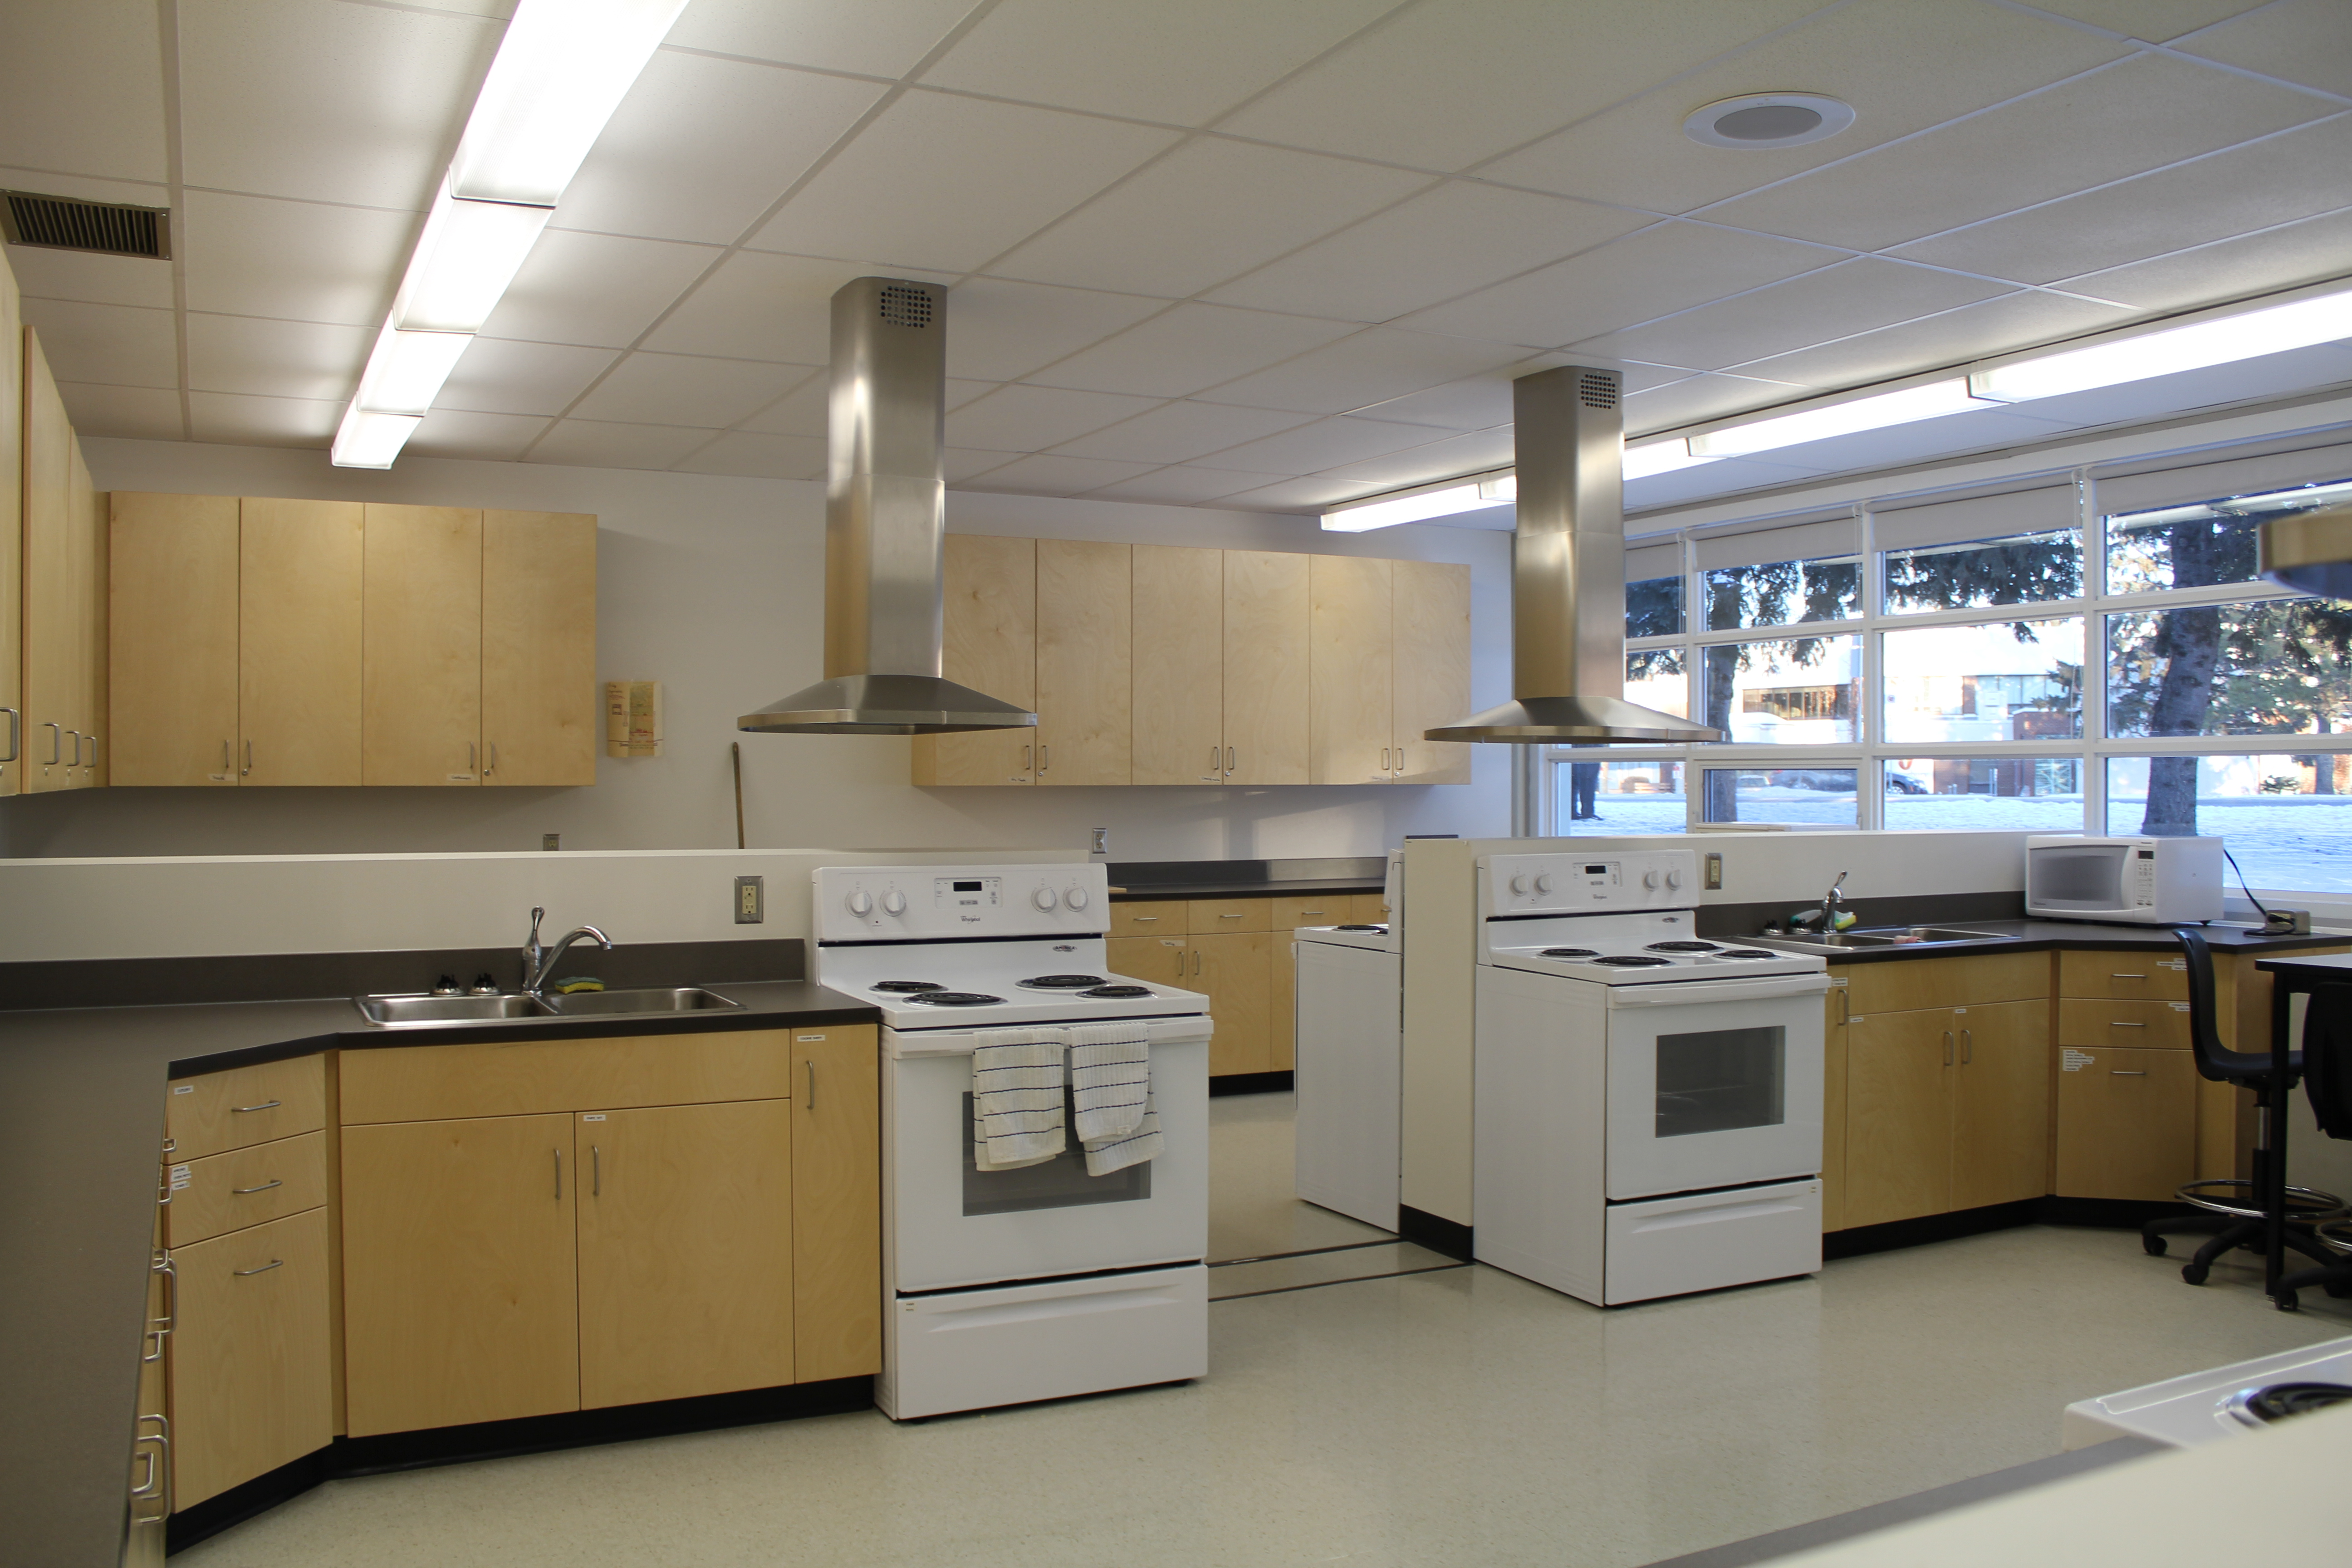 Our new Foods Lab